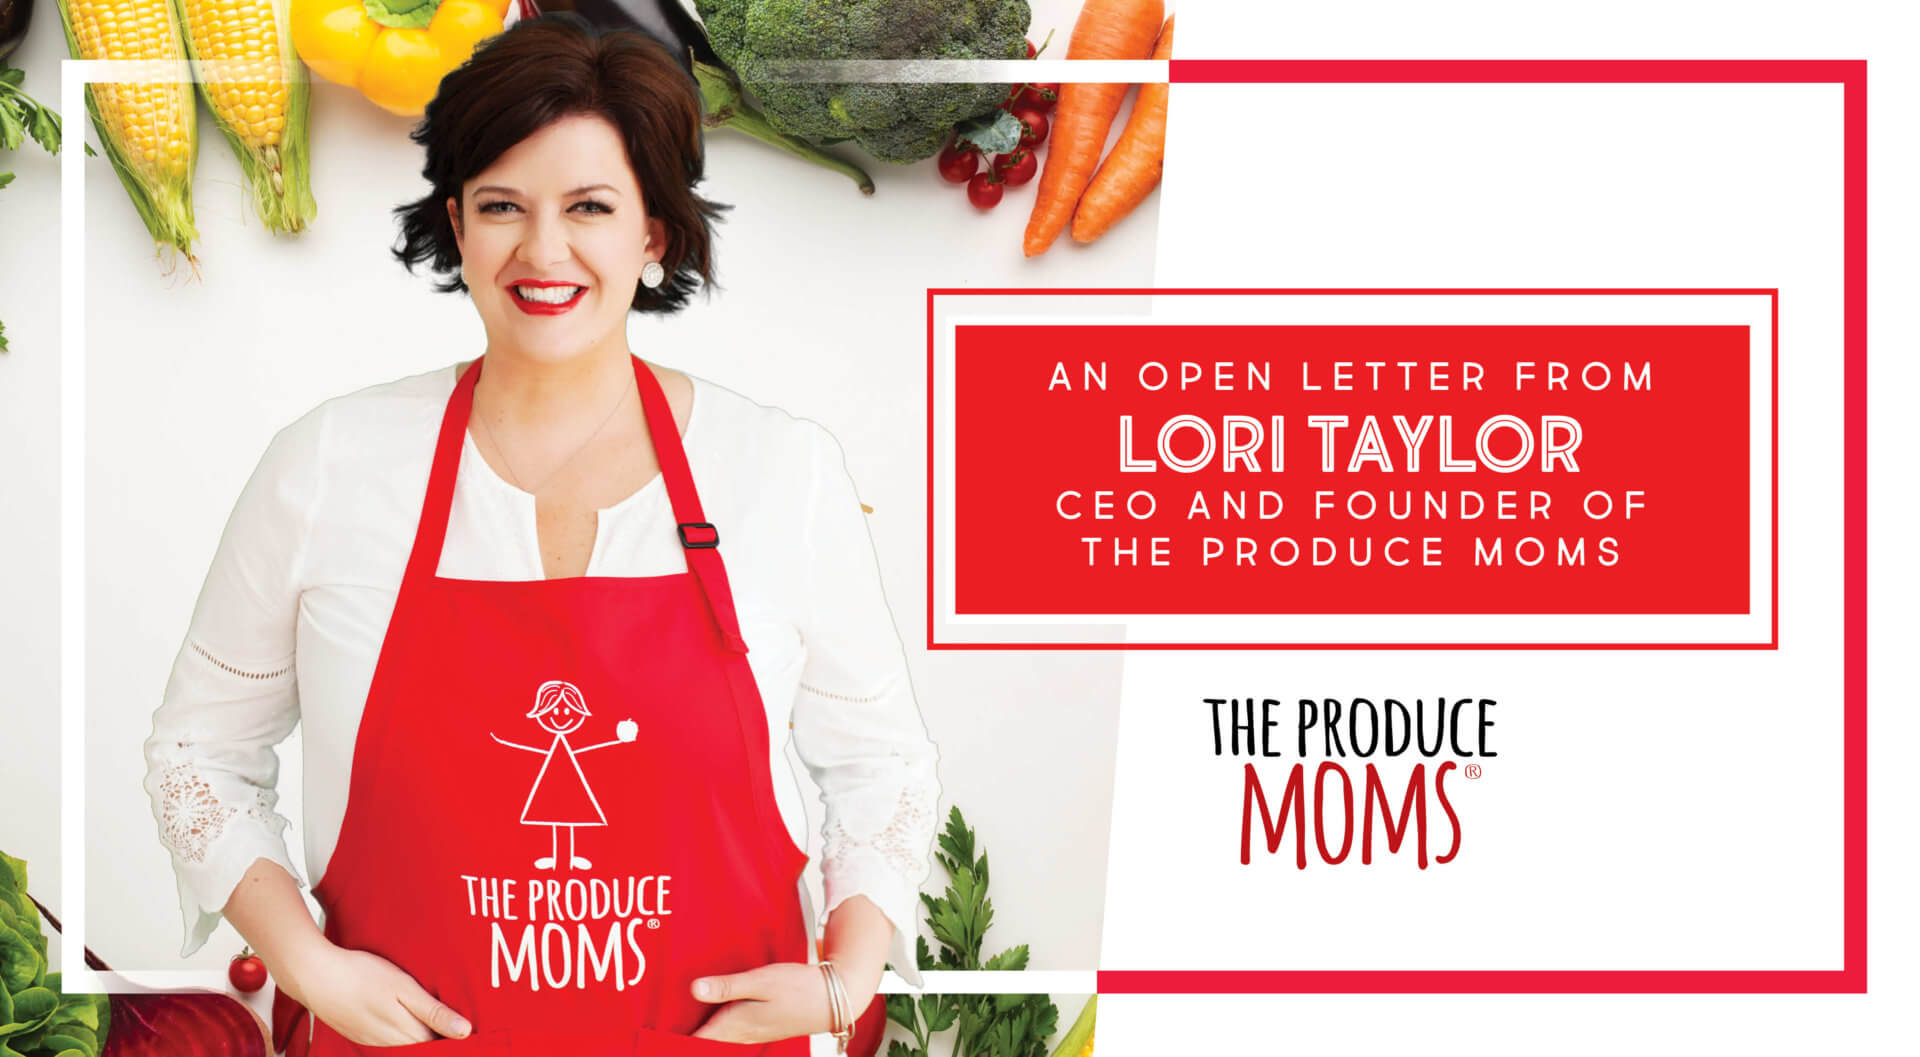 Mother's Day 2020: An Open Letter from Our Founder, Lori Taylor